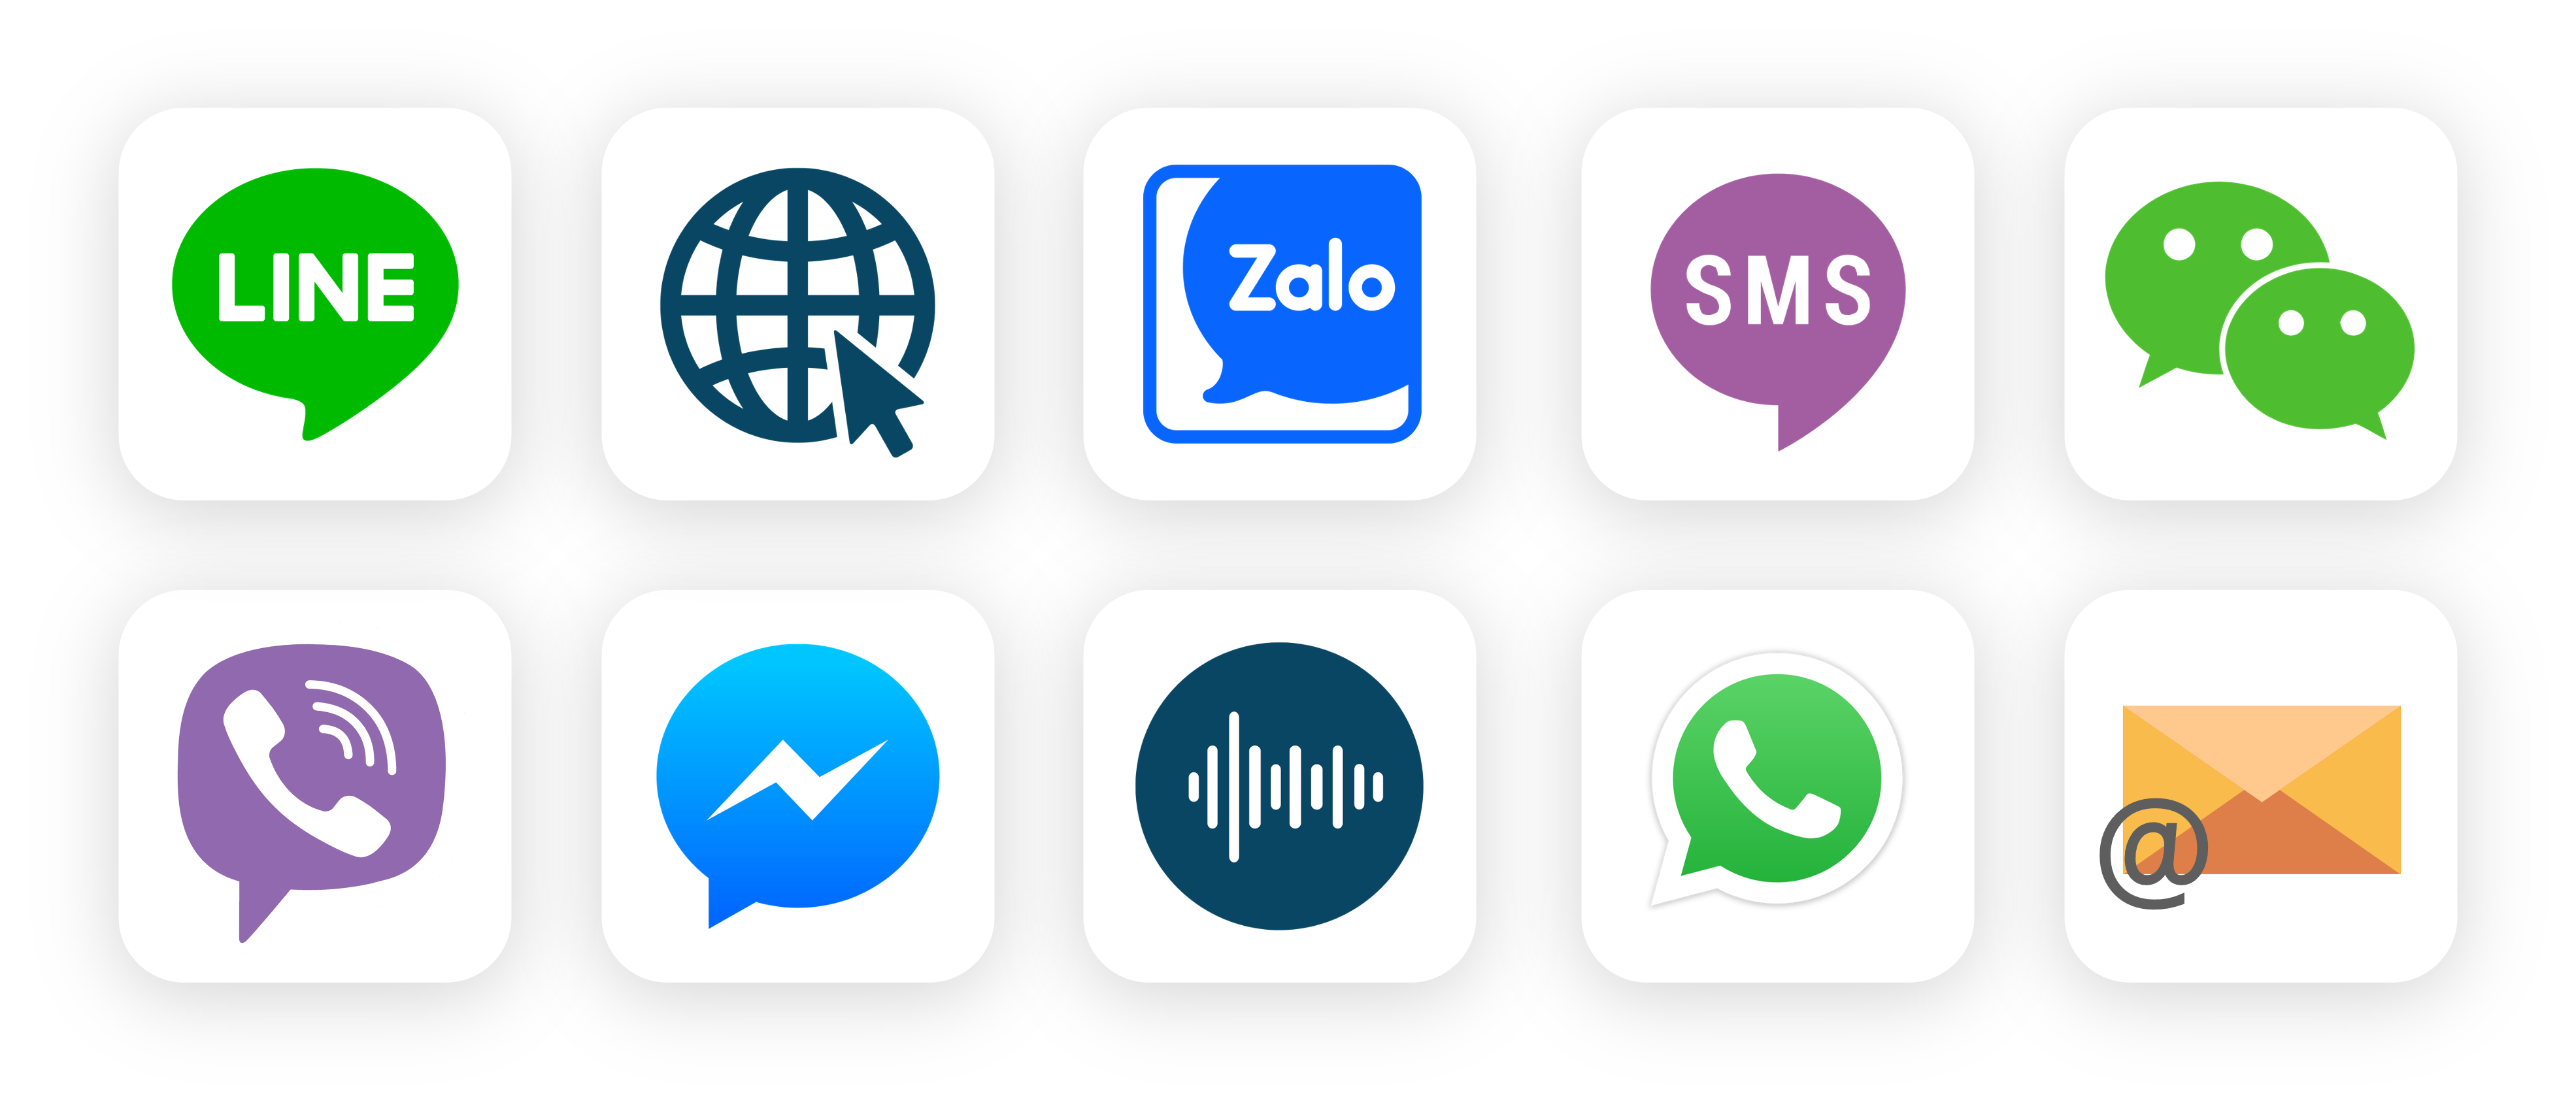 Communication channel icons